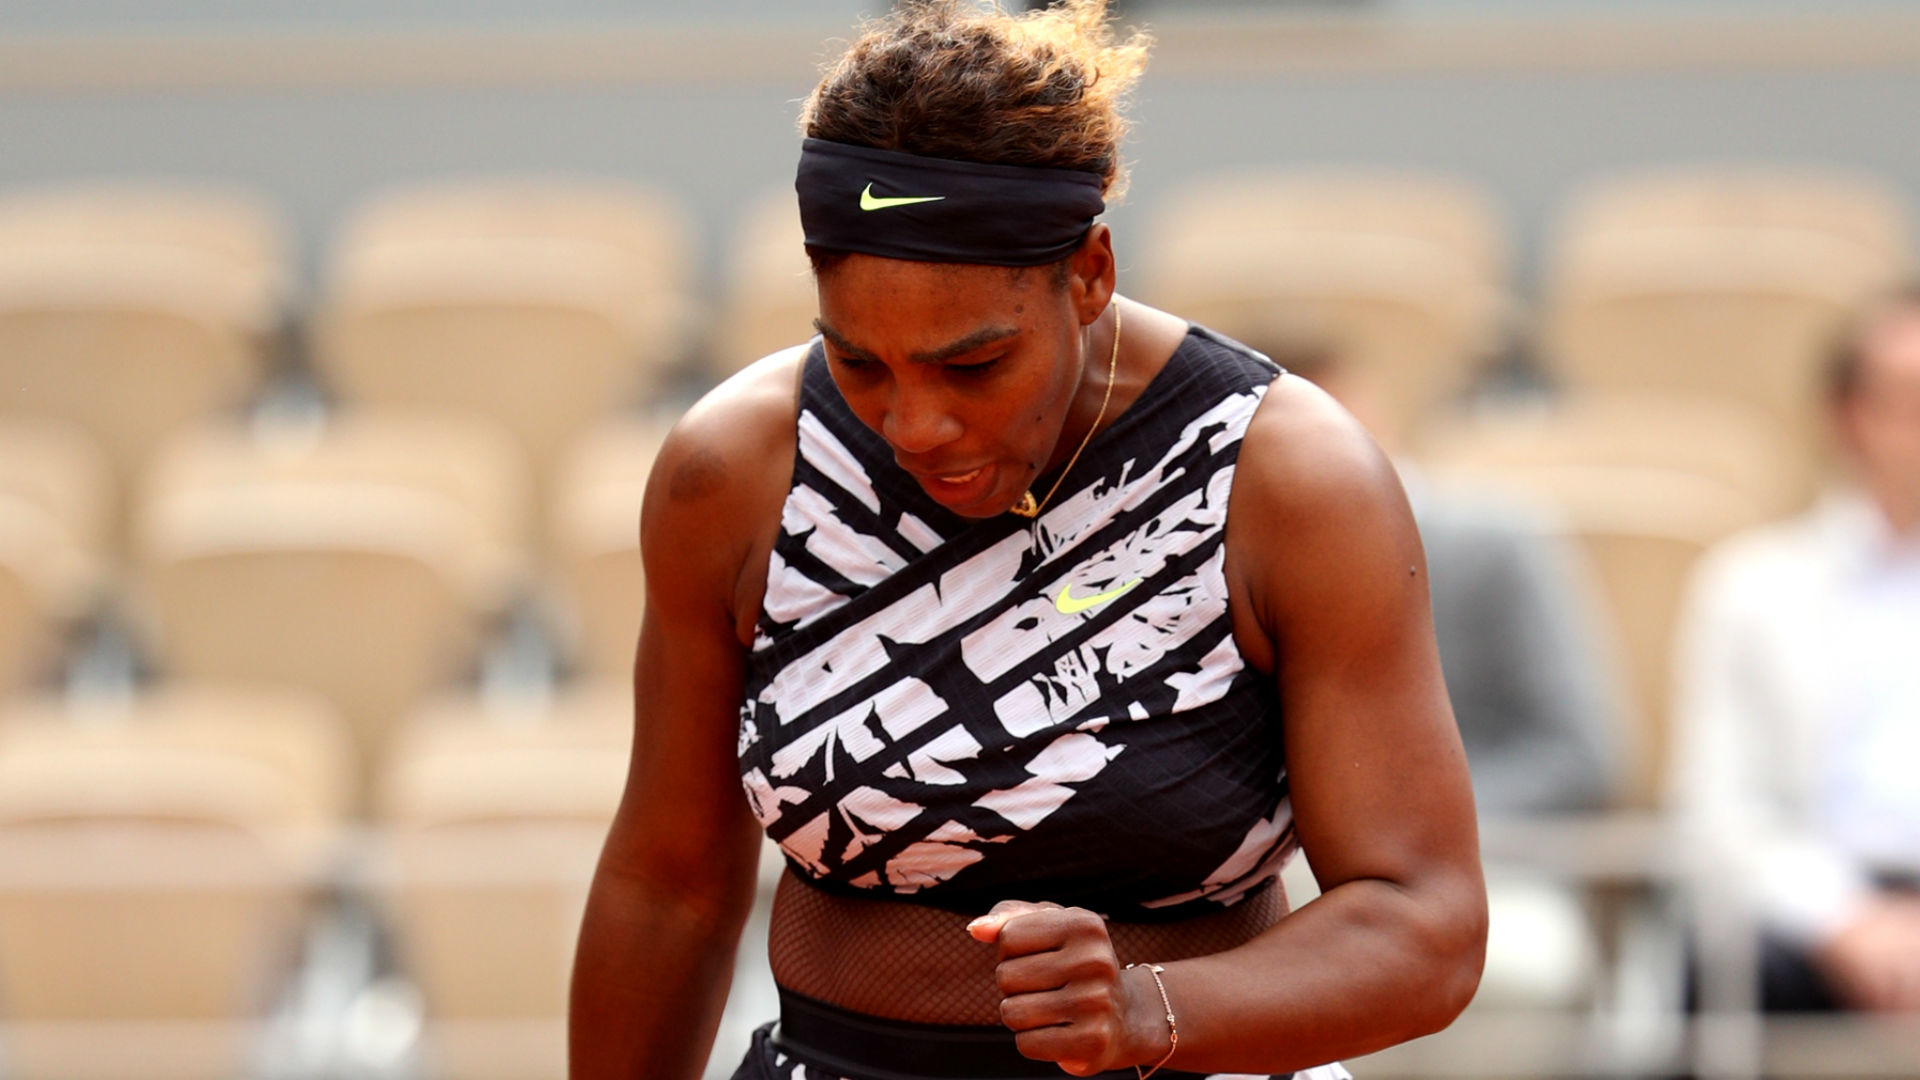 Serena Williams becomes 1st athlete on Forbes' Richest Self-Made Women list